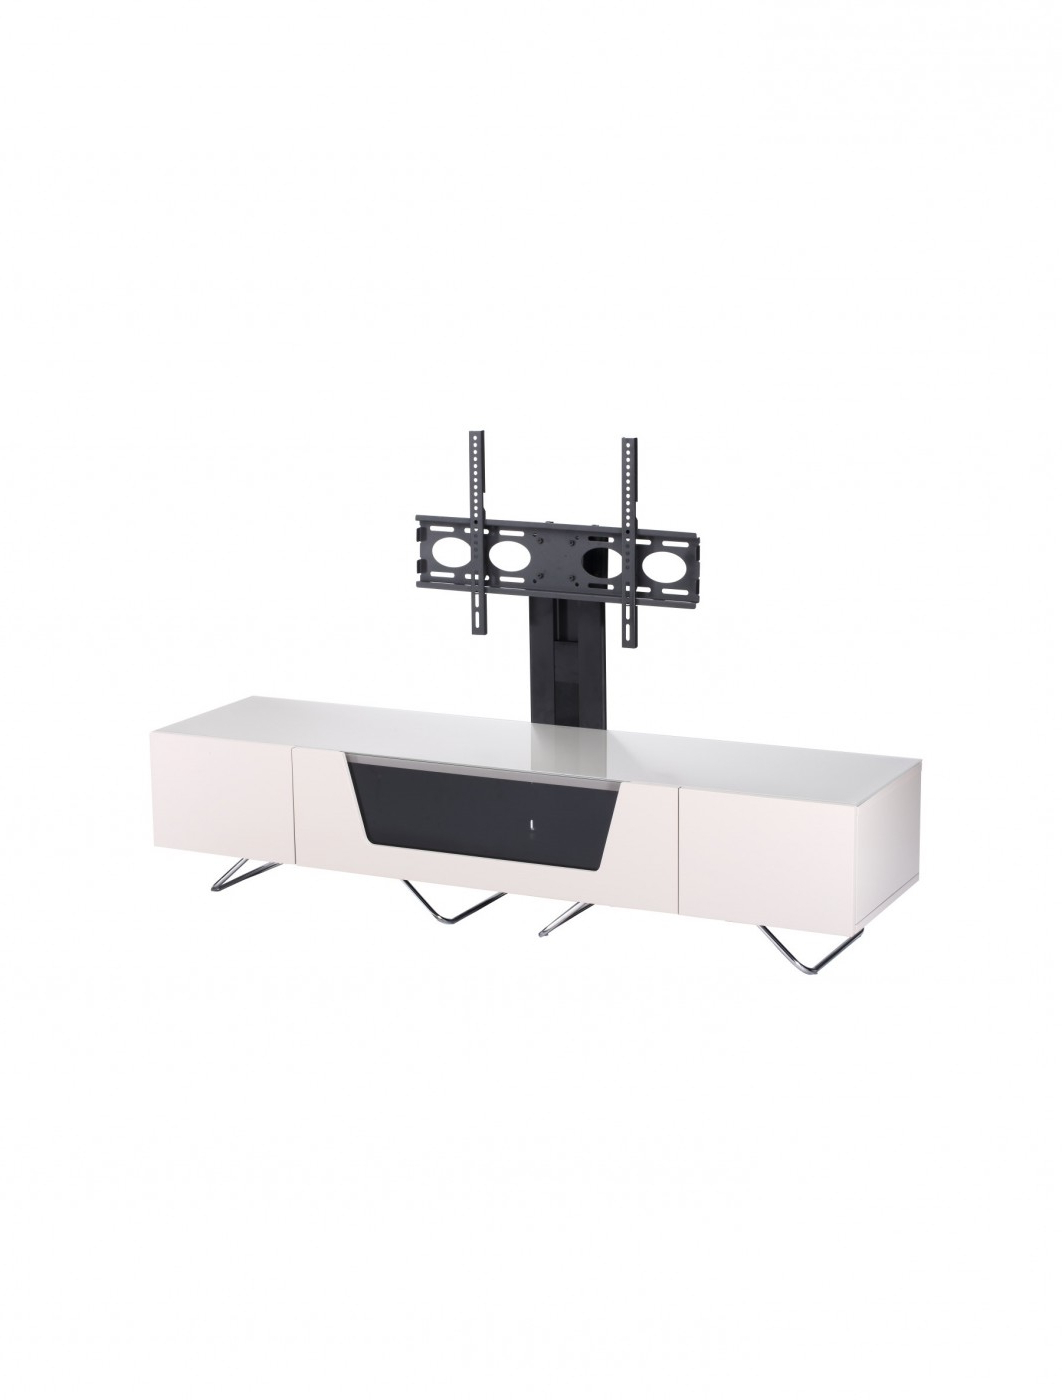 Favorite Alphason Chromium Cantilever Tv Stand Cro2 1600bkt Iv For Chromium Tv Stands (View 25 of 25)